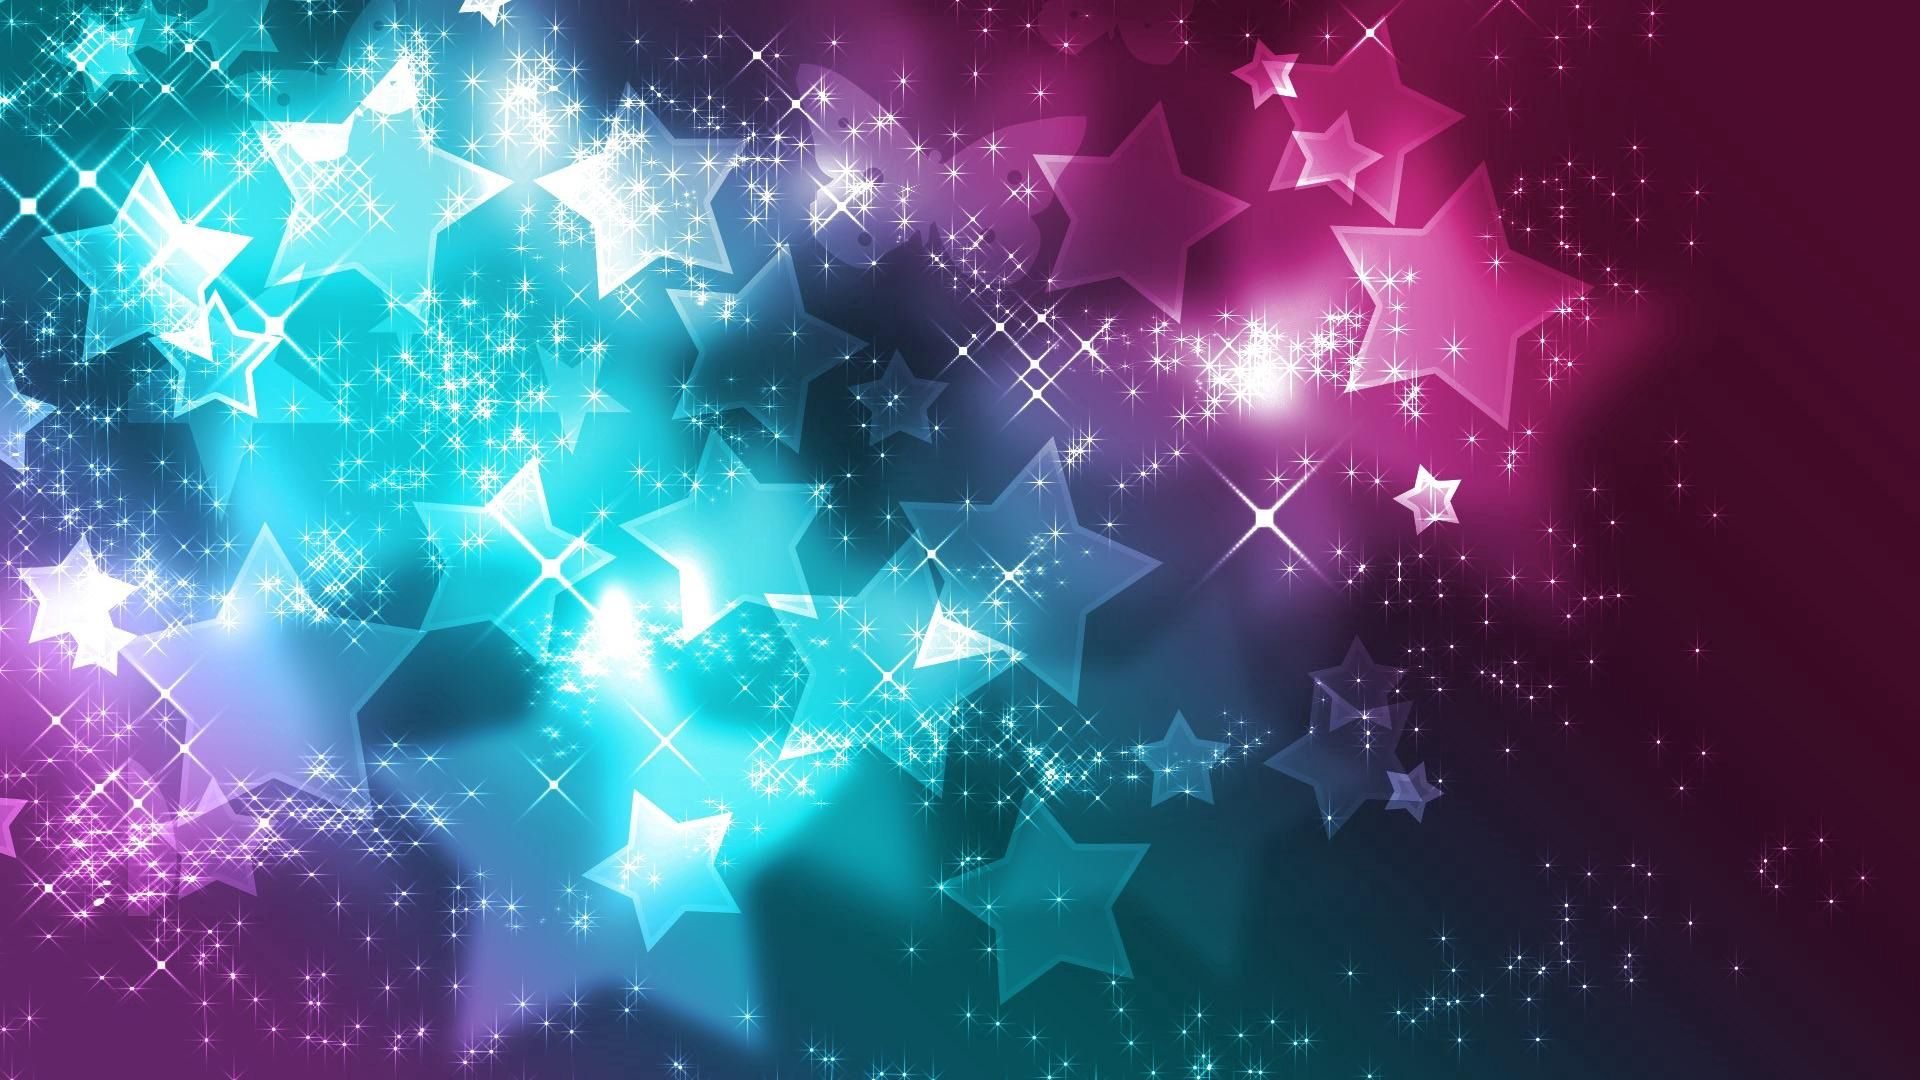 63874 download wallpaper Abstract, Background, Stars, Shine, Brilliance, Colorful, Colourful, Tinsel, Sequins screensavers and pictures for free